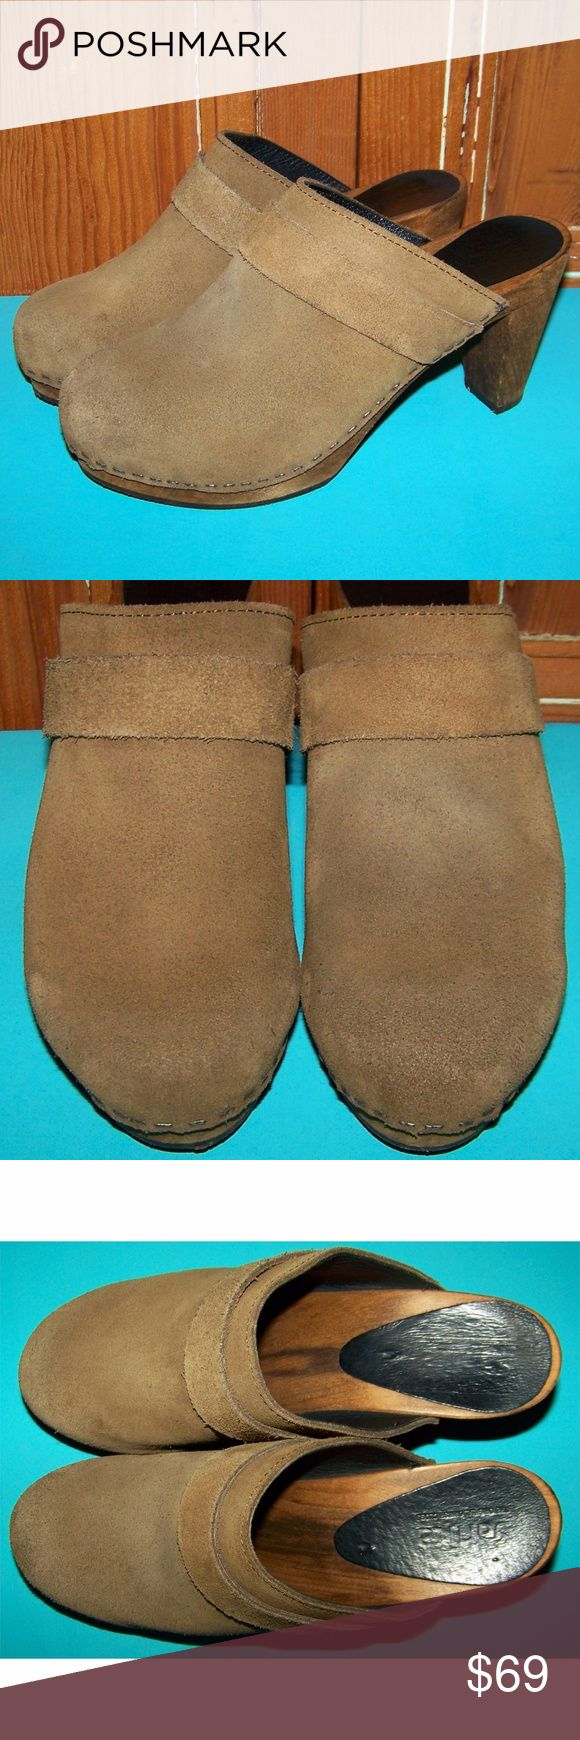 """Sanita Tanya Plateau Brown Wooden Mule Clogs Sanita Tanya plateau light brown suede leather wooden heel mules clog shoes. Excellent, few minor scuffs and scrapes, please see photos. Womens size US 9-9.5 EUR 40, heel height is 3.75"""". Clean and ready to wear. f852 Sanita Shoes Mules & Clogs"""